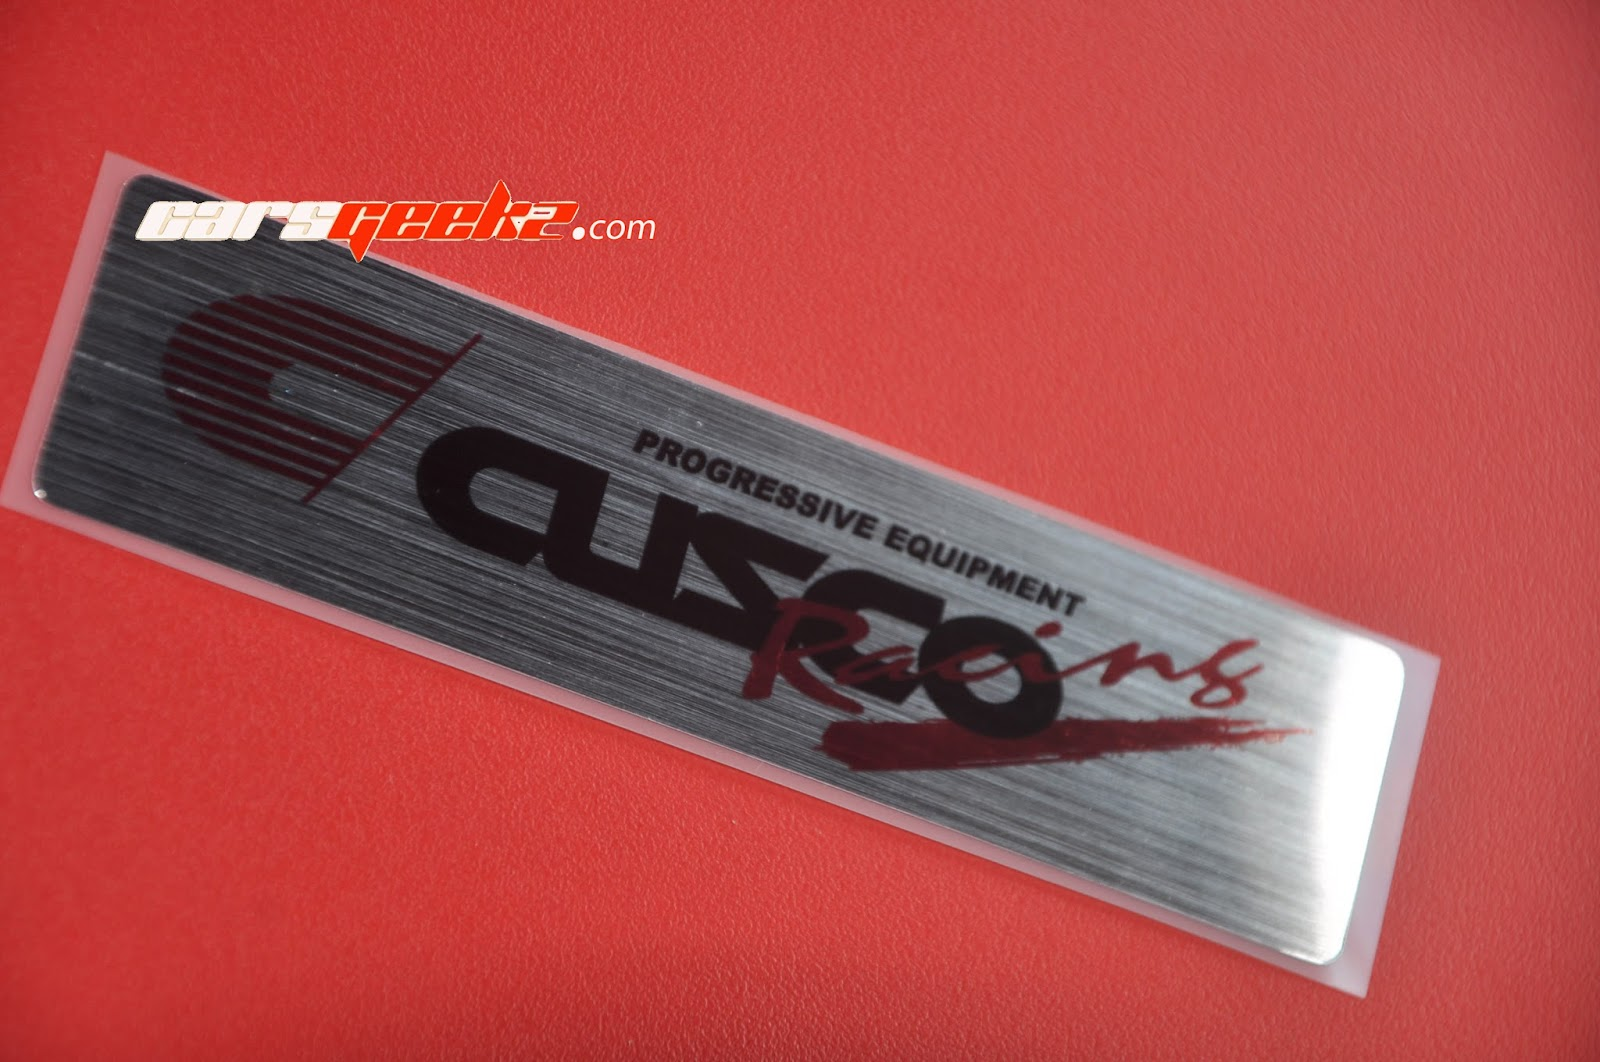 P1 Racing Sport Rim >> Cusco Racing Progresive Equipment Chrome Sticker Silver Brush decals - AutoDecalsHouse Store Online